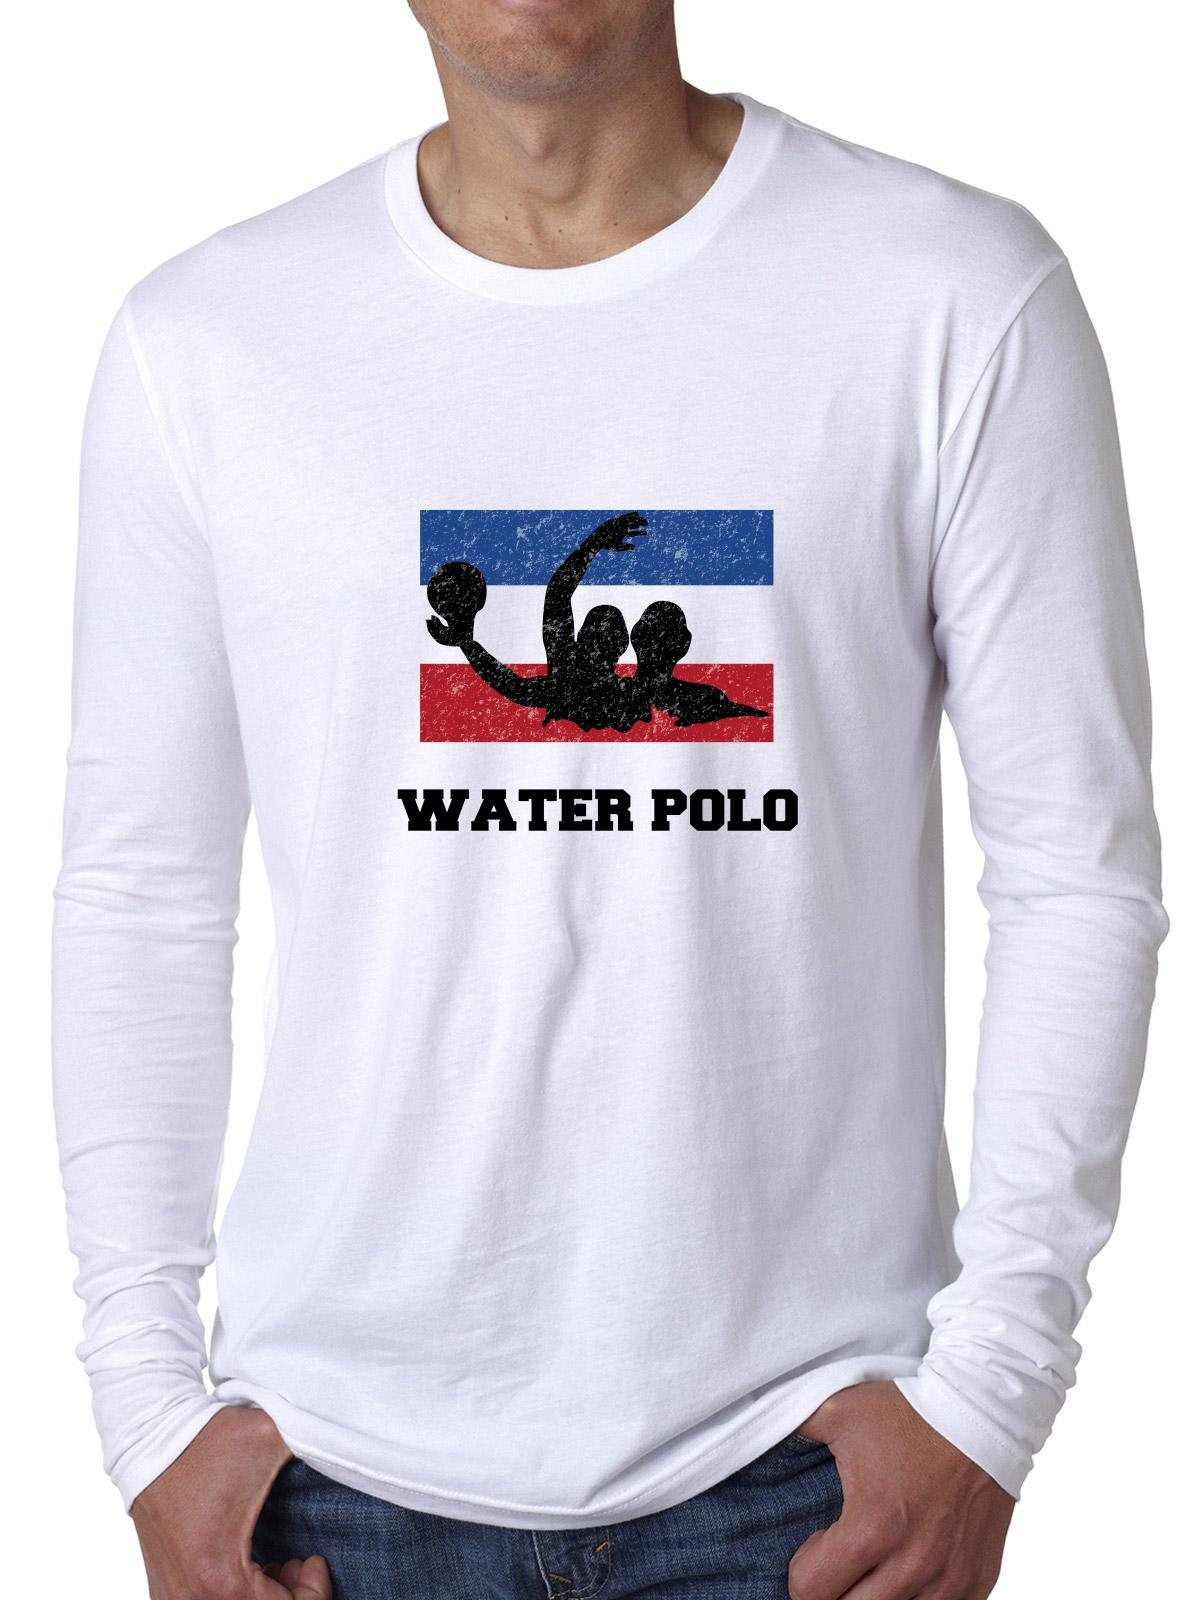 Netherlands Olympic Water Polo Flag Silhouette Men's Long Sleeve T-Shirt by Hollywood Thread